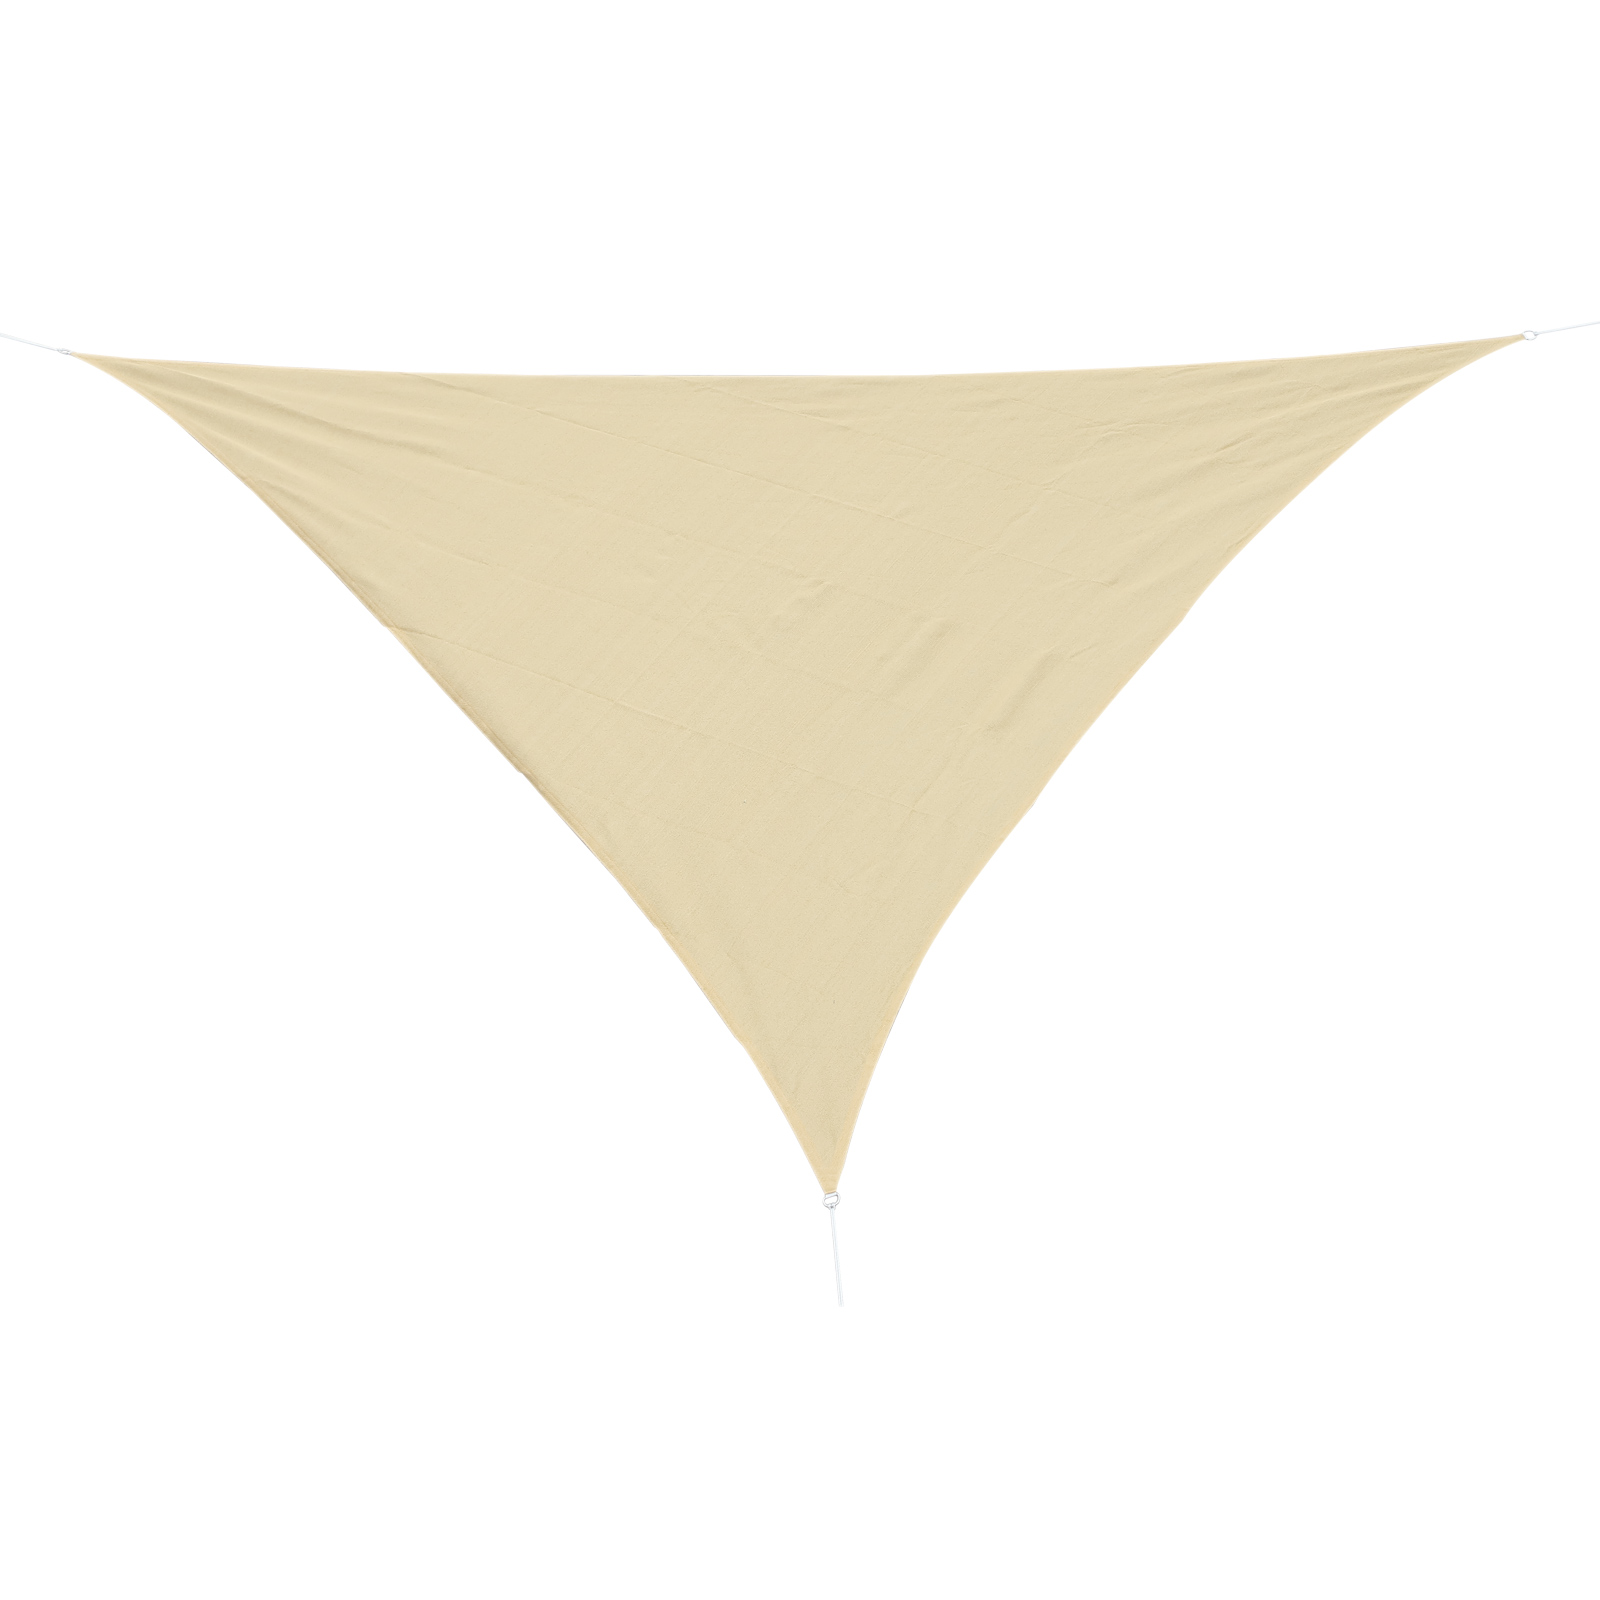 Outsunny Tenda da sole triangolare, beige, 4x4x4m